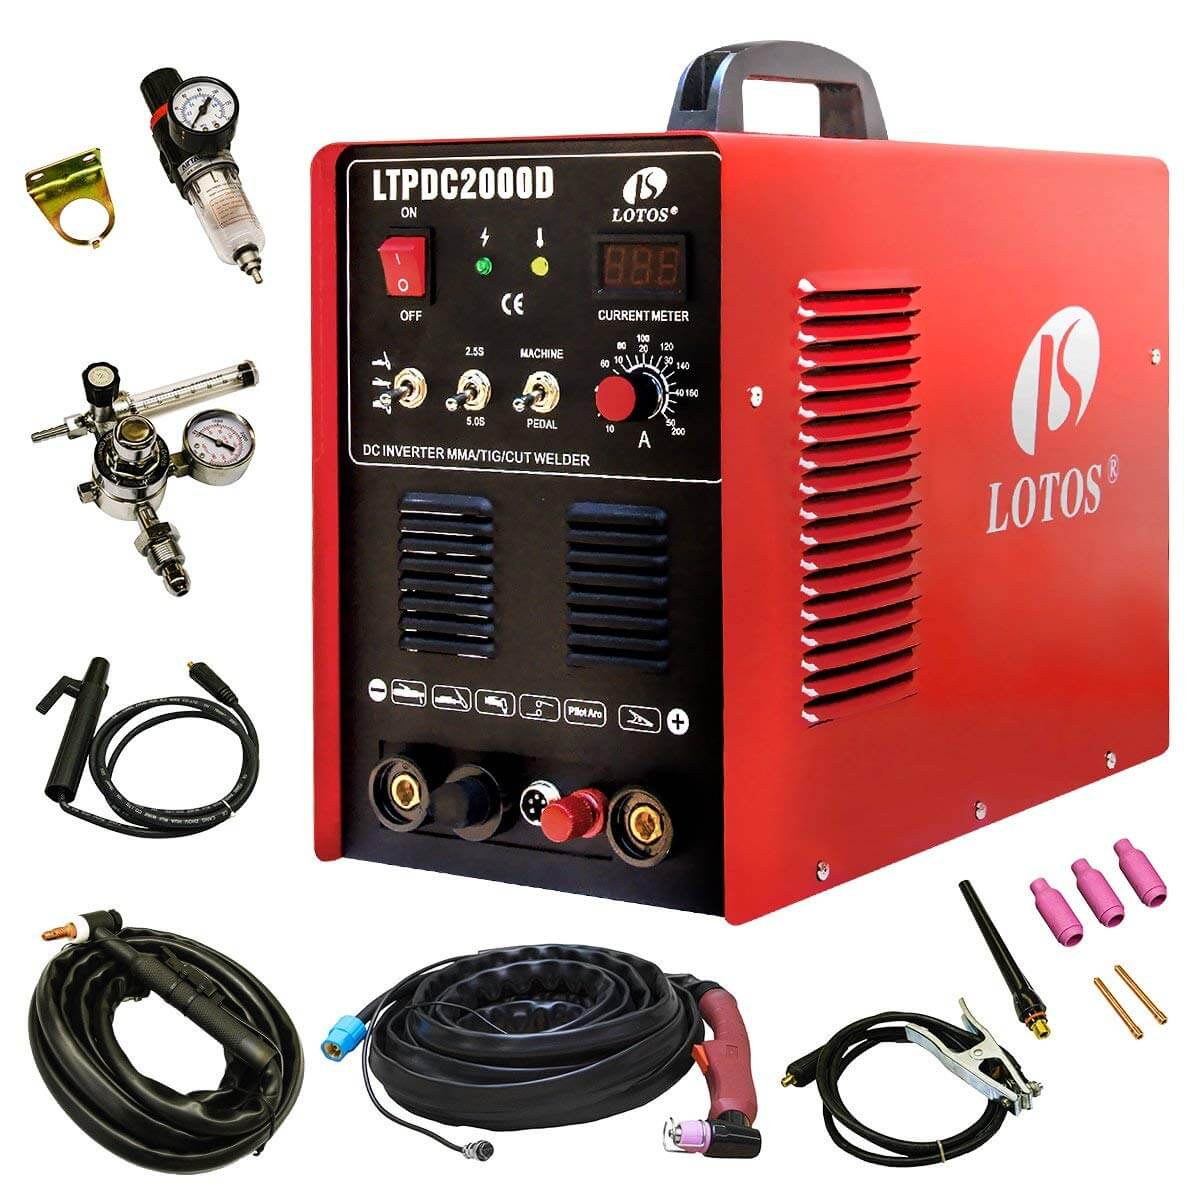 Lotos ltpdc2000d welder review